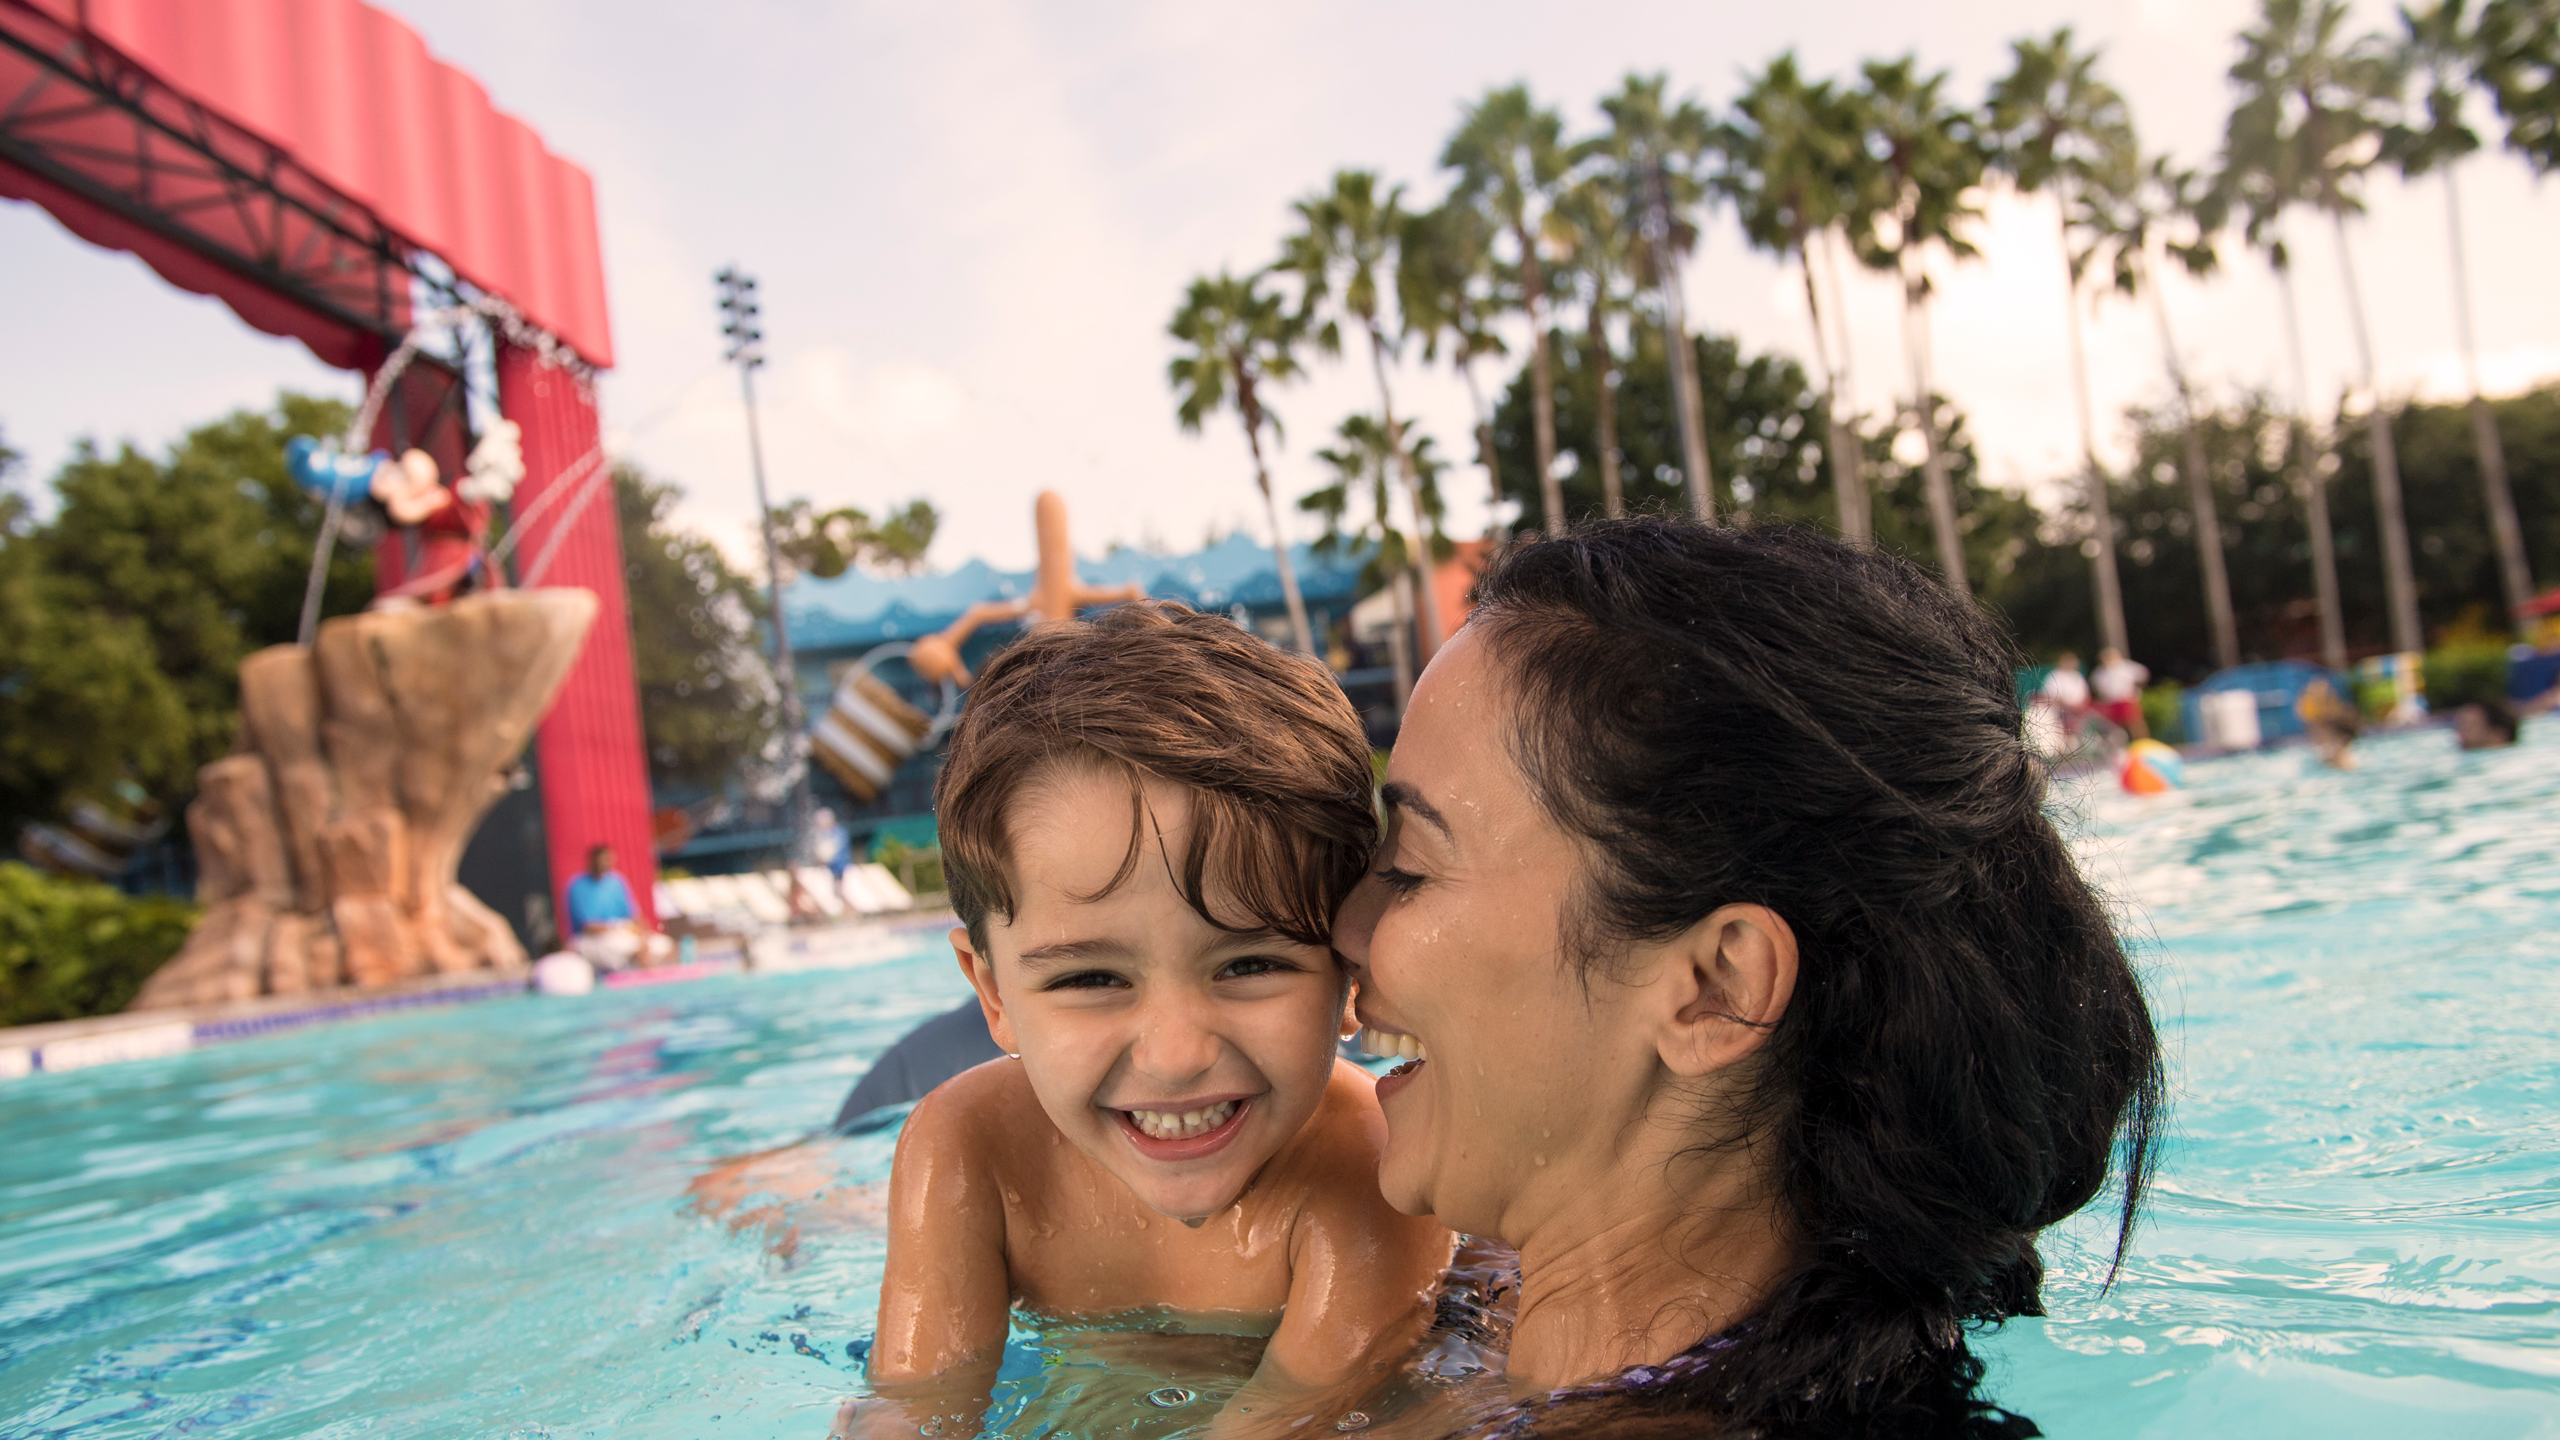 A mother and son enjoy pool time at Disney's Art of Animation Resort